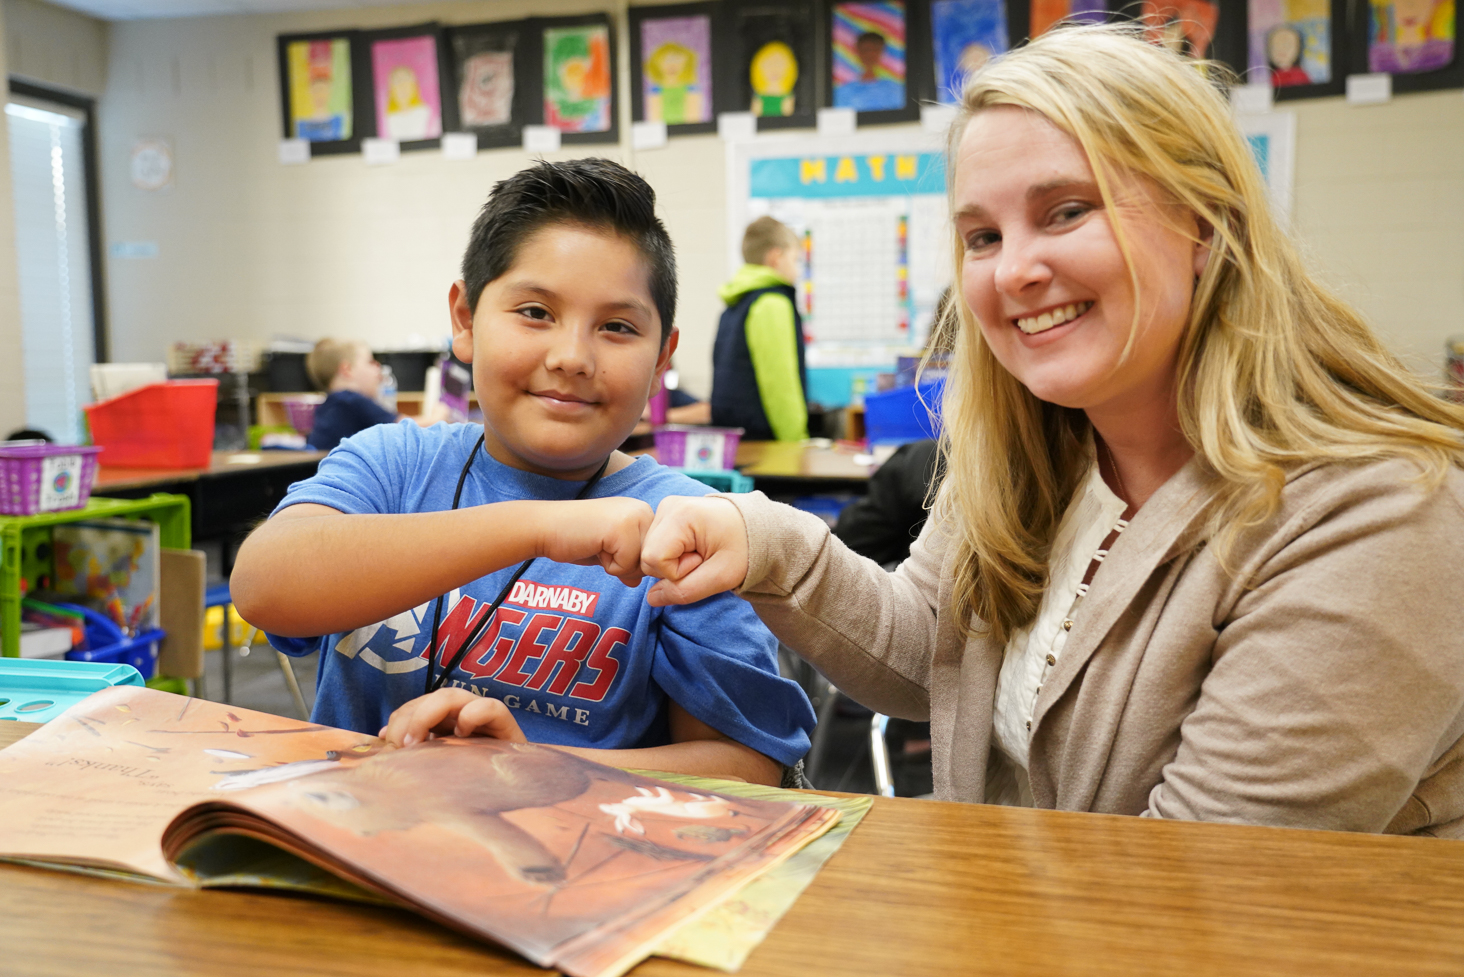 "Darnaby Elementary – Tara Miller, Reading Specialist Reading specialist Tara Miller has been named the Darnaby Elementary Teacher of the Year for 2019-2020. She has been with Union since 2006.  When Miller was a student at the University of Oklahoma in engineering, she decided to volunteer in a first grade classroom.   ""The students in this classroom were excited to be at school,"" Miller said. ""They worked in teams to create solutions to real-world problems. They created book talk videos featuring their favorite books.  They used art and music to help their learning stick.  All of these amazing, positive experiences the students were having was because of their loving and passionate teacher.  She created an environment in which her students could thrive.  I wanted to be just like her.  She inspired me to change my major and pursue elementary education.""  As a teacher, Miller has taught all subjects but she found her favorite to be reading.   ""Reading opens doors for students,"" Miller opined. ""They are able to leave where they are and become characters.  They have shared experiences with their characters and learn lessons that they can take with them.  They can read books of interest and learn new information.  I feel that the most exciting part of my job is in helping them become strategic readers.  They are able to make meaning from their text because they have strategies they can pull from their toolbox.  It brings joy to see students excited about reading.  I know that I have instilled a love for reading.""  Miller has a Bachelor of Science in Education degree from the University of Oklahoma, Master of Science in Teaching, Learning and Leadership degree; and is certified in Elementary Education, Reading Specialist, Social Studies, and English as a Second Language."